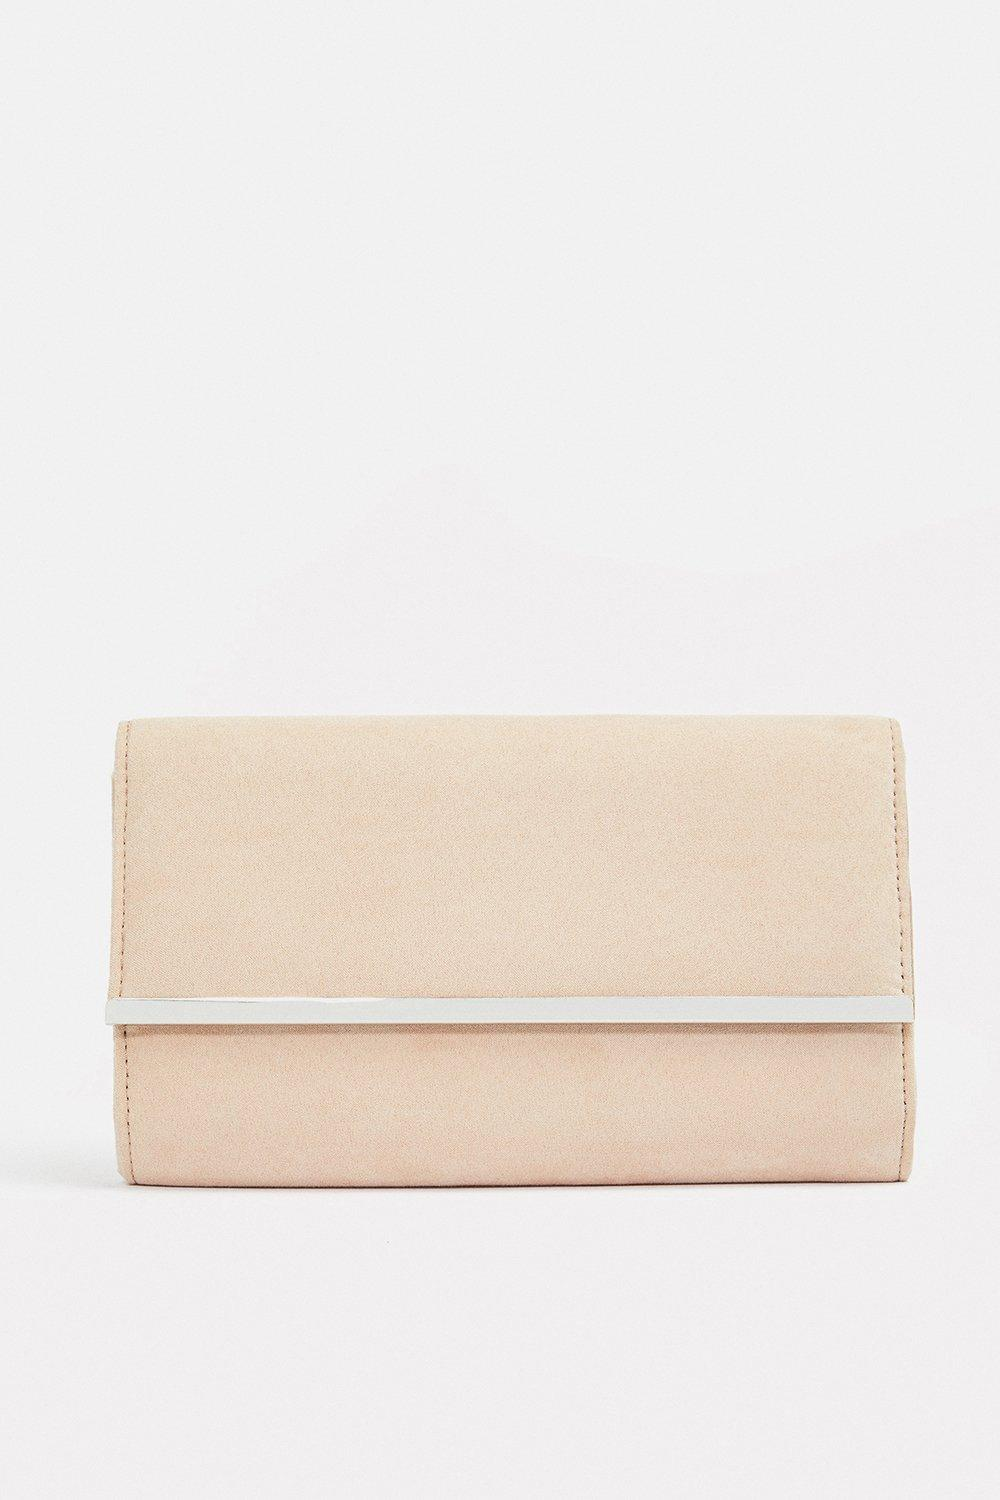 Coast Gold Bar Clutch Bag